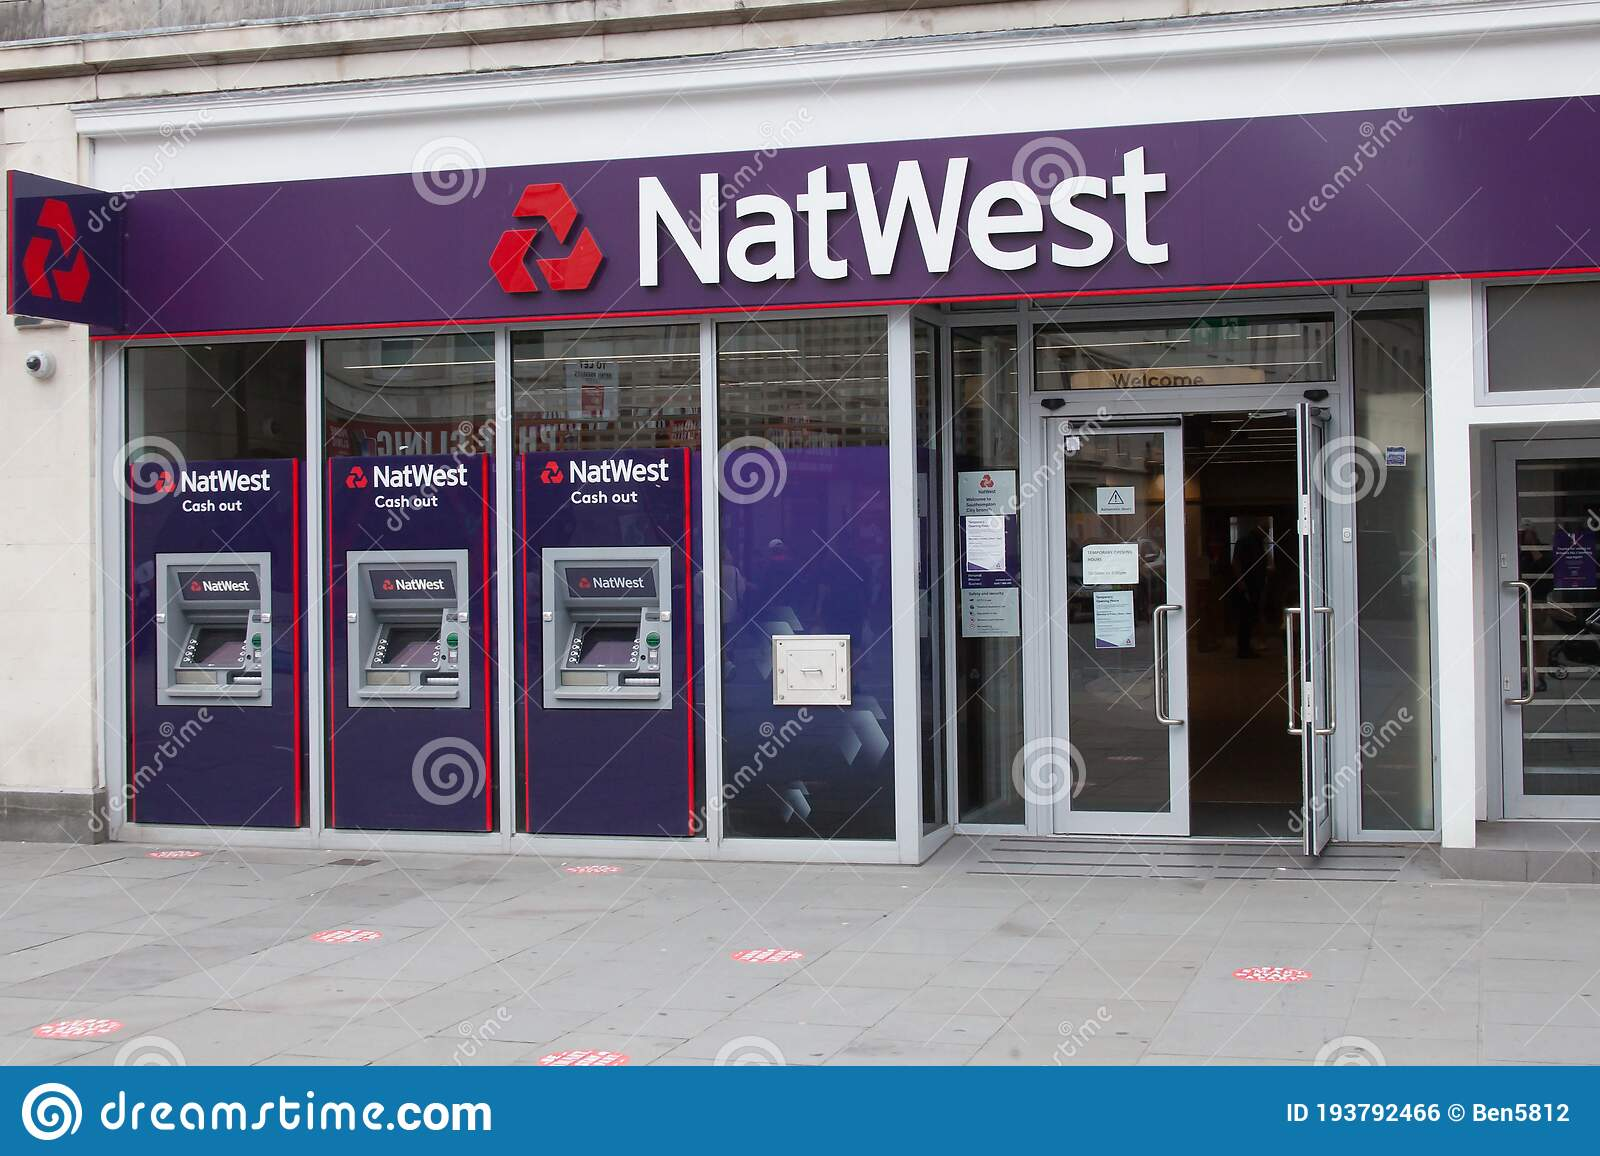 natwest-bank-southampton-hampshire-united-kingdom-uk-taken-th-july-193792466.jpg?profile=RESIZE_400x